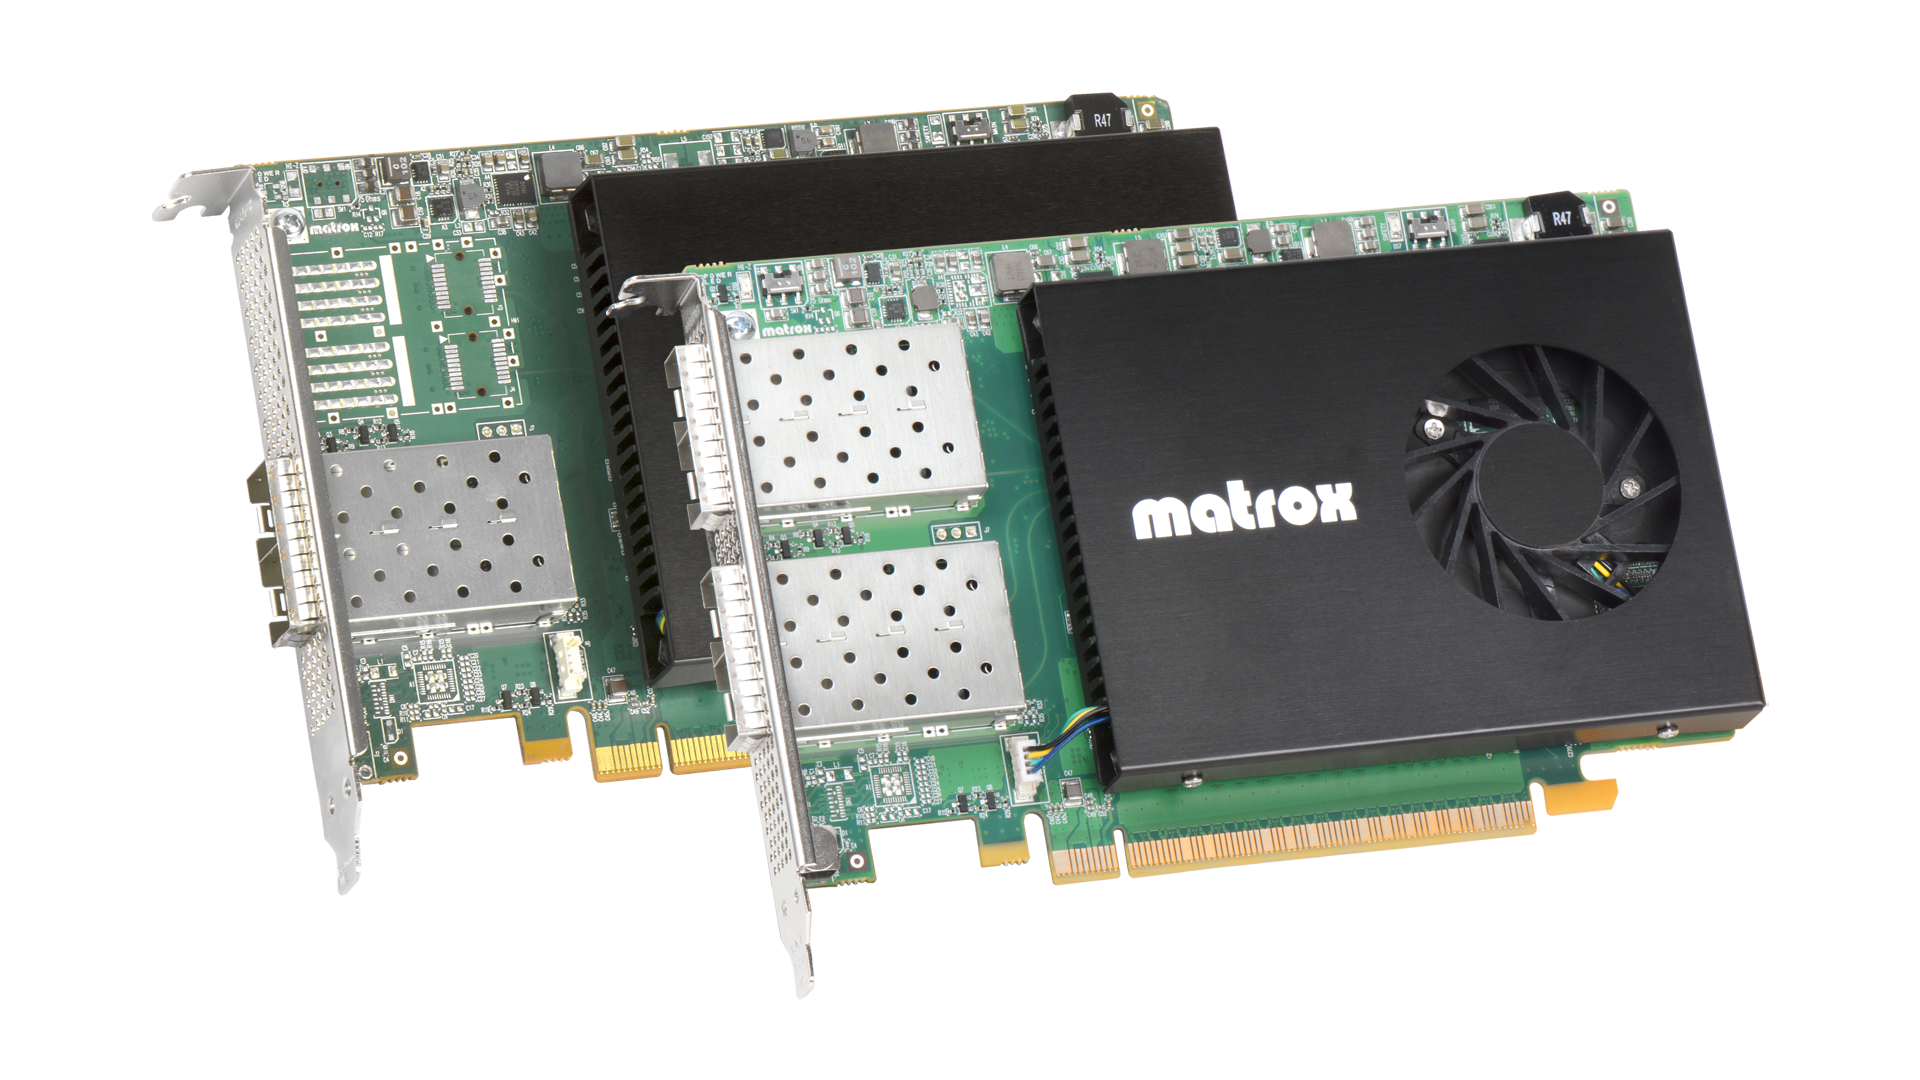 Matrox DSX LE5 Q25 and Matrox DSX LE5 D25 ST 2110 Quad 25 Gbe Network Adapter